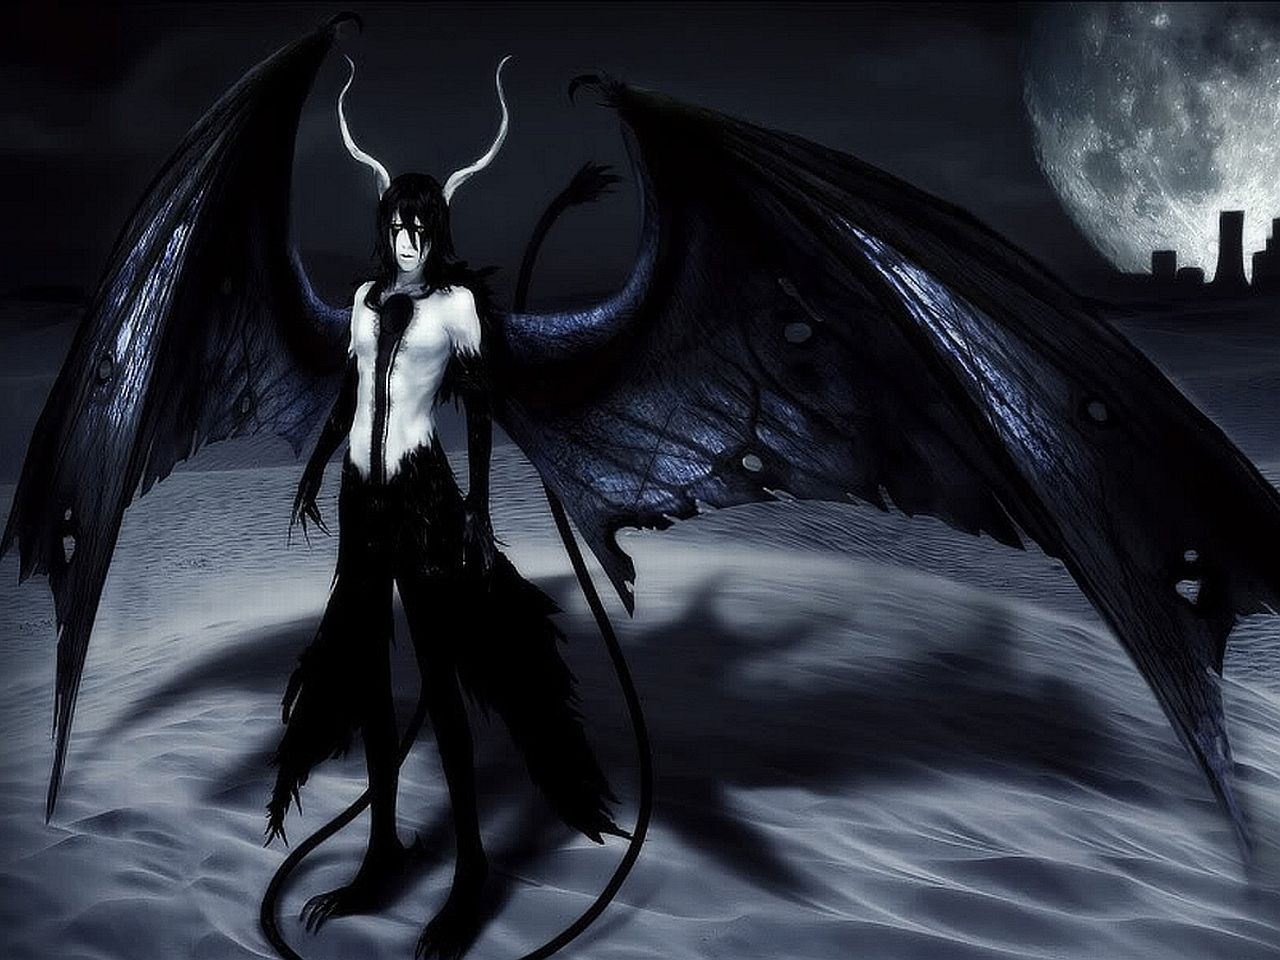 Ulquiorra Cifer Bleach Wallpaper (With images) Bleach art